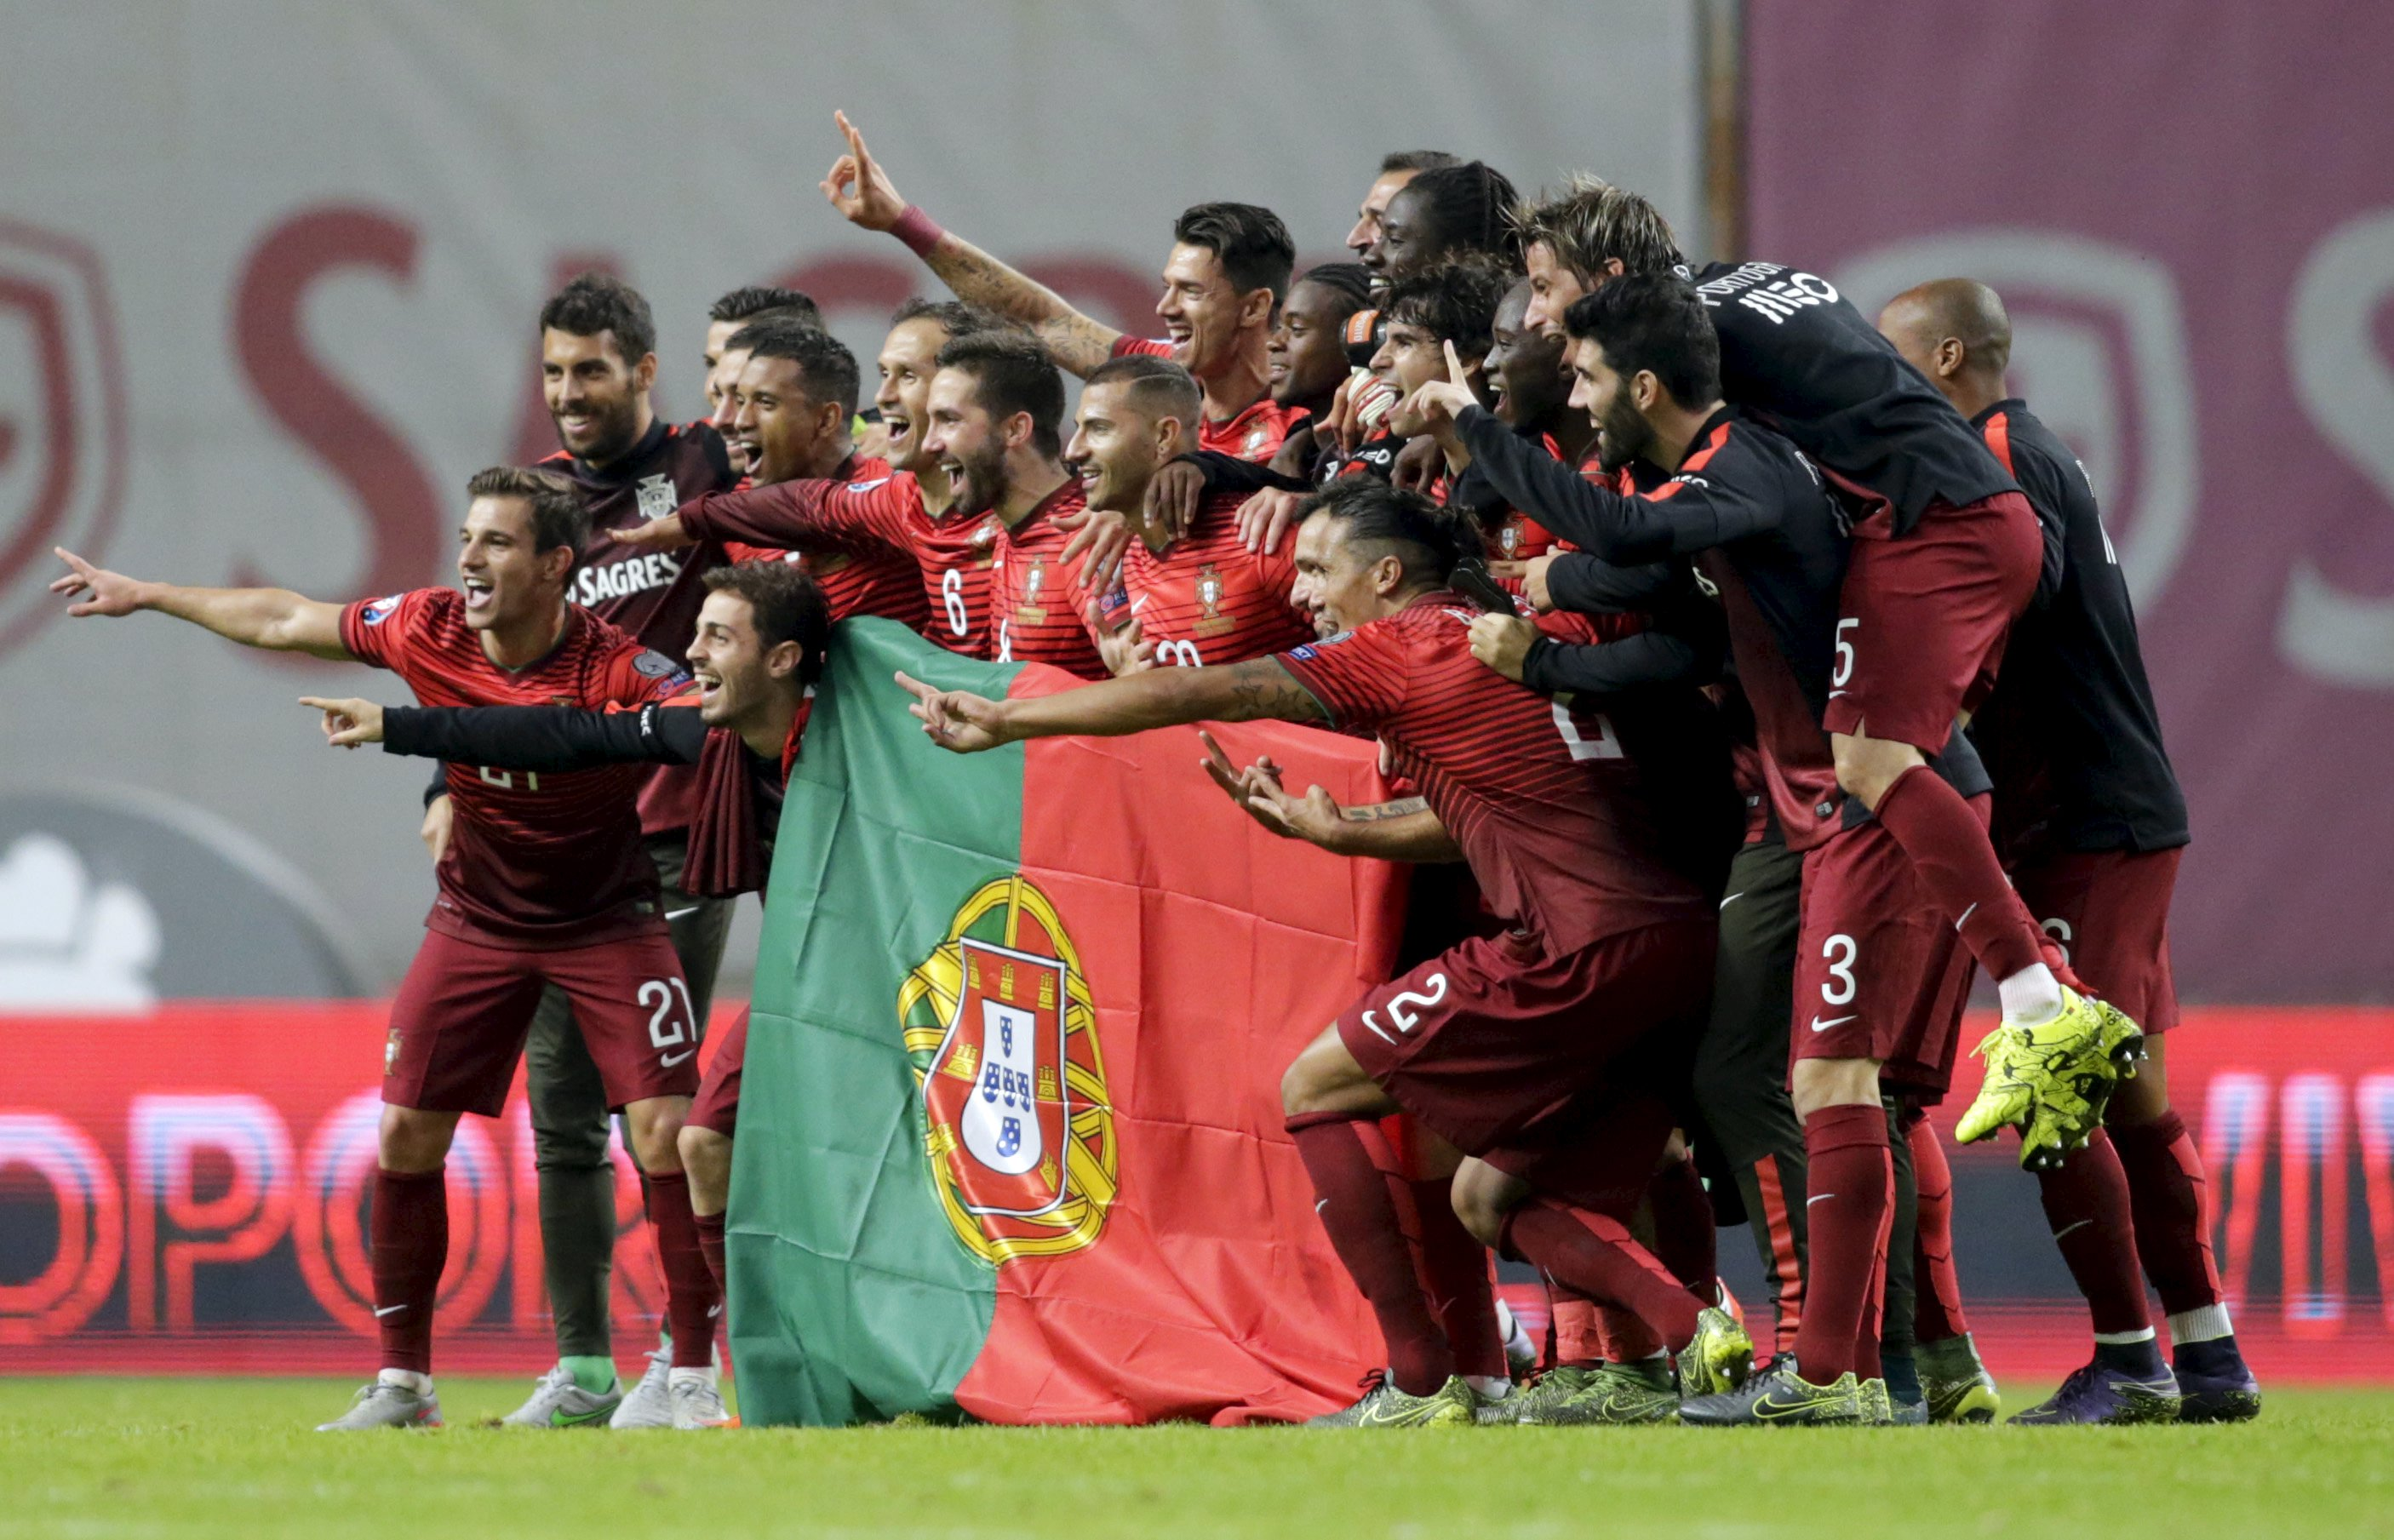 Portugal's team poses with the flag of Portugal at the end their Euro 2016 qualifying soccer match against Denmark at Municipal Stadium in Braga, Portugal, October 8, 2015. REUTERS/Miguel Vidal